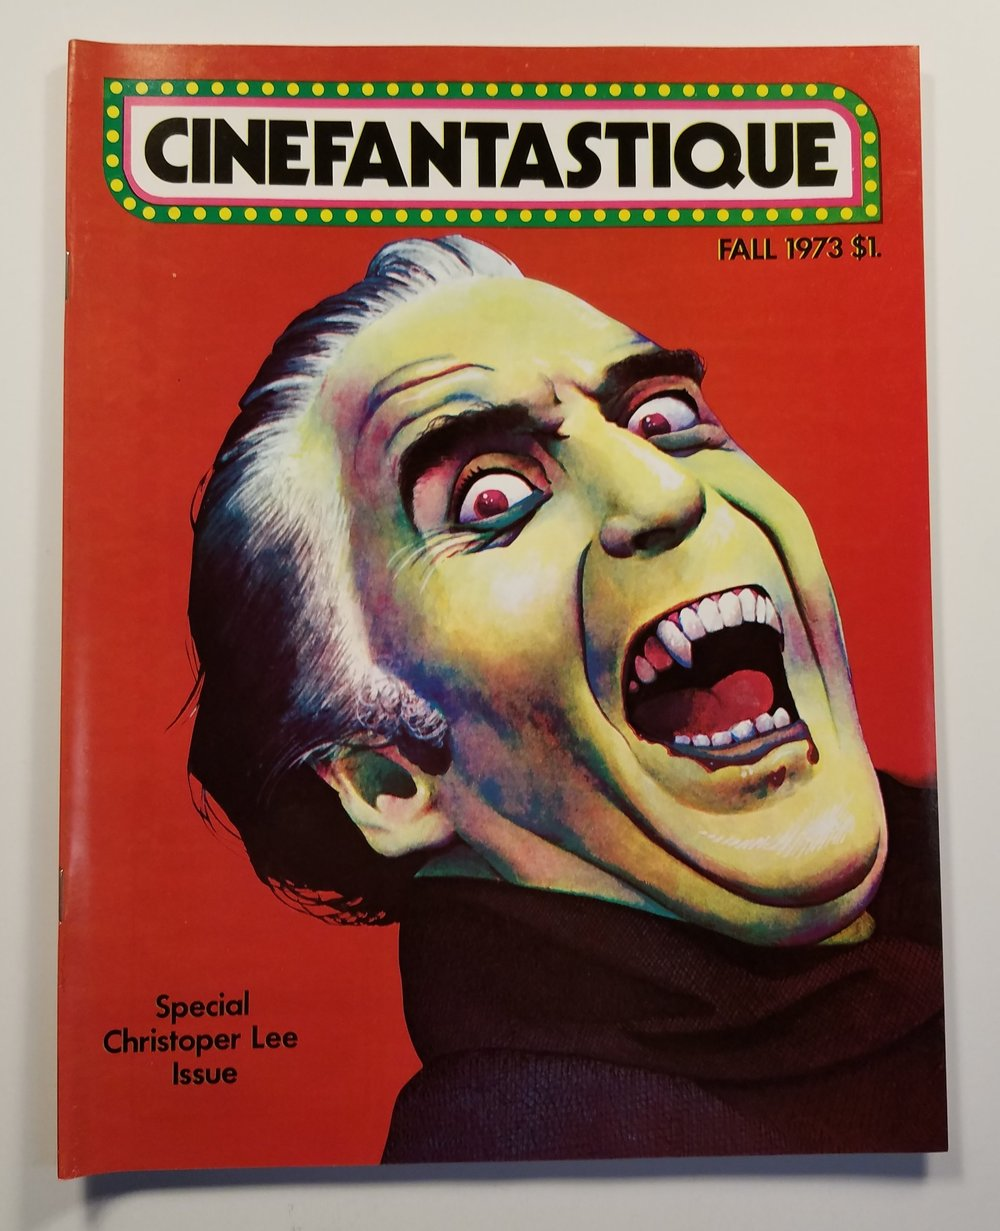 Magazines - Movies, Horror, Comedy & Adult